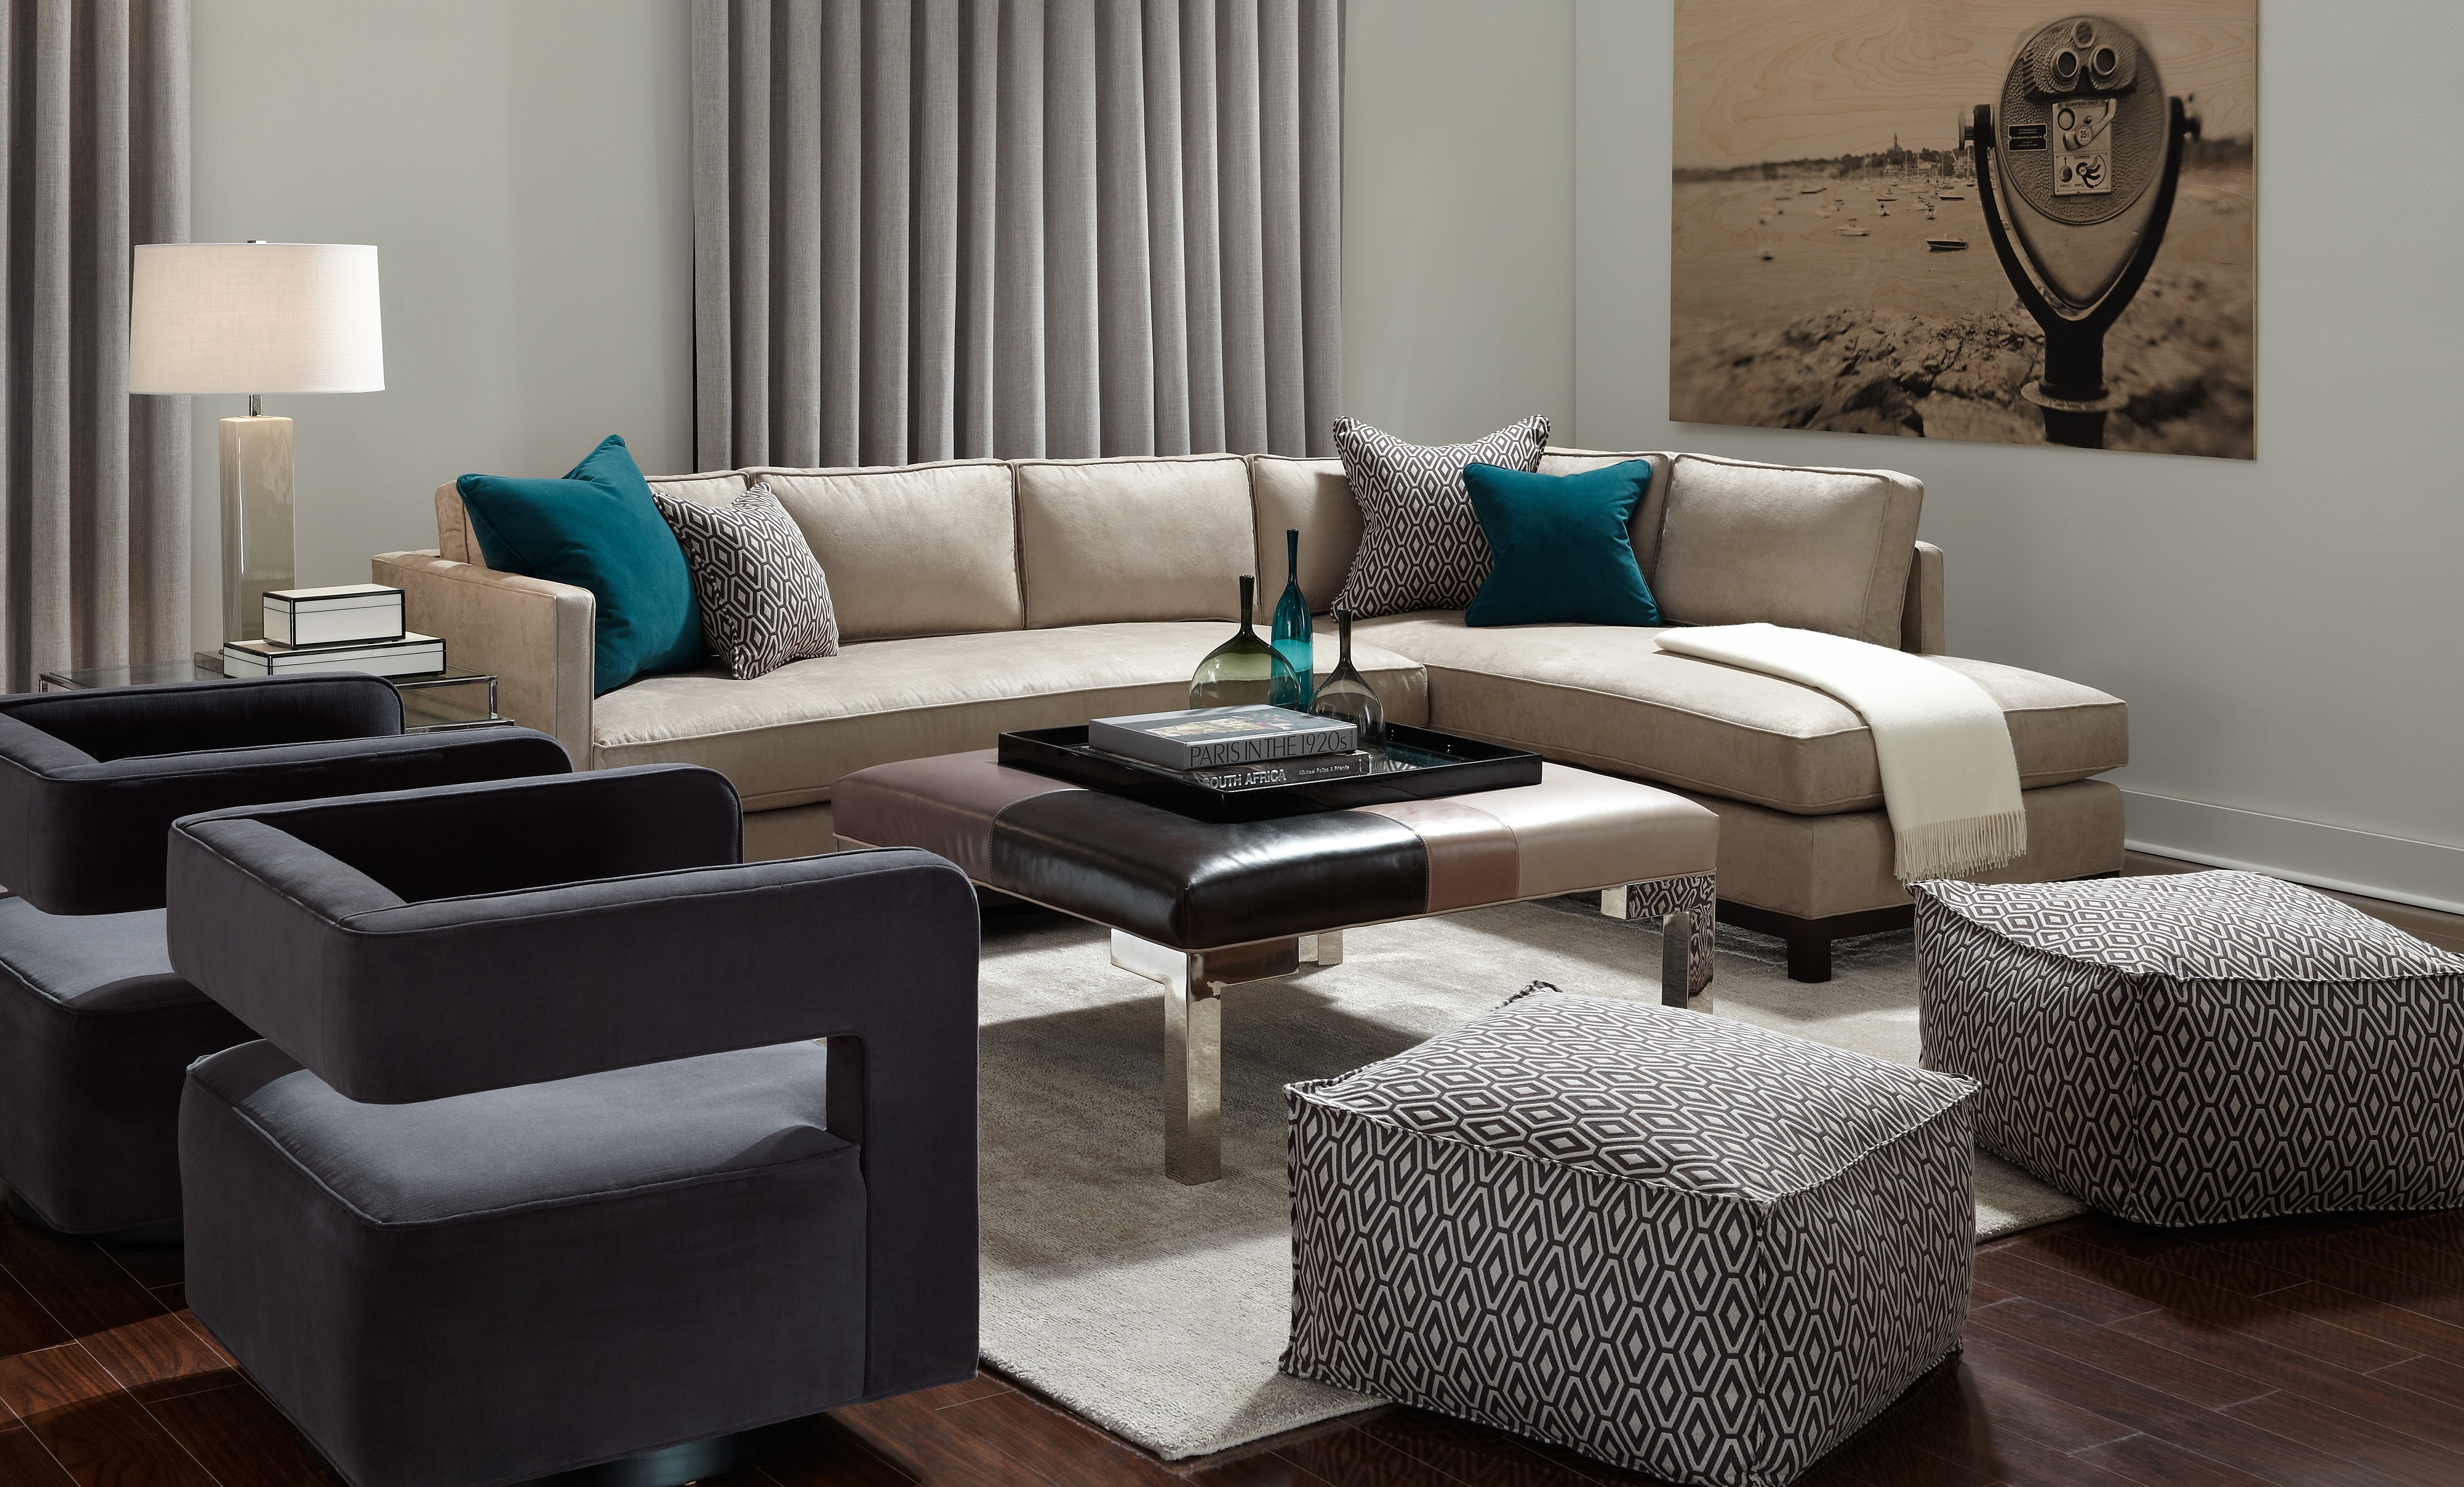 Mitchell Gold Sectional Sofa | Aifaresidency with regard to Gold Sectional Sofas (Image 8 of 10)